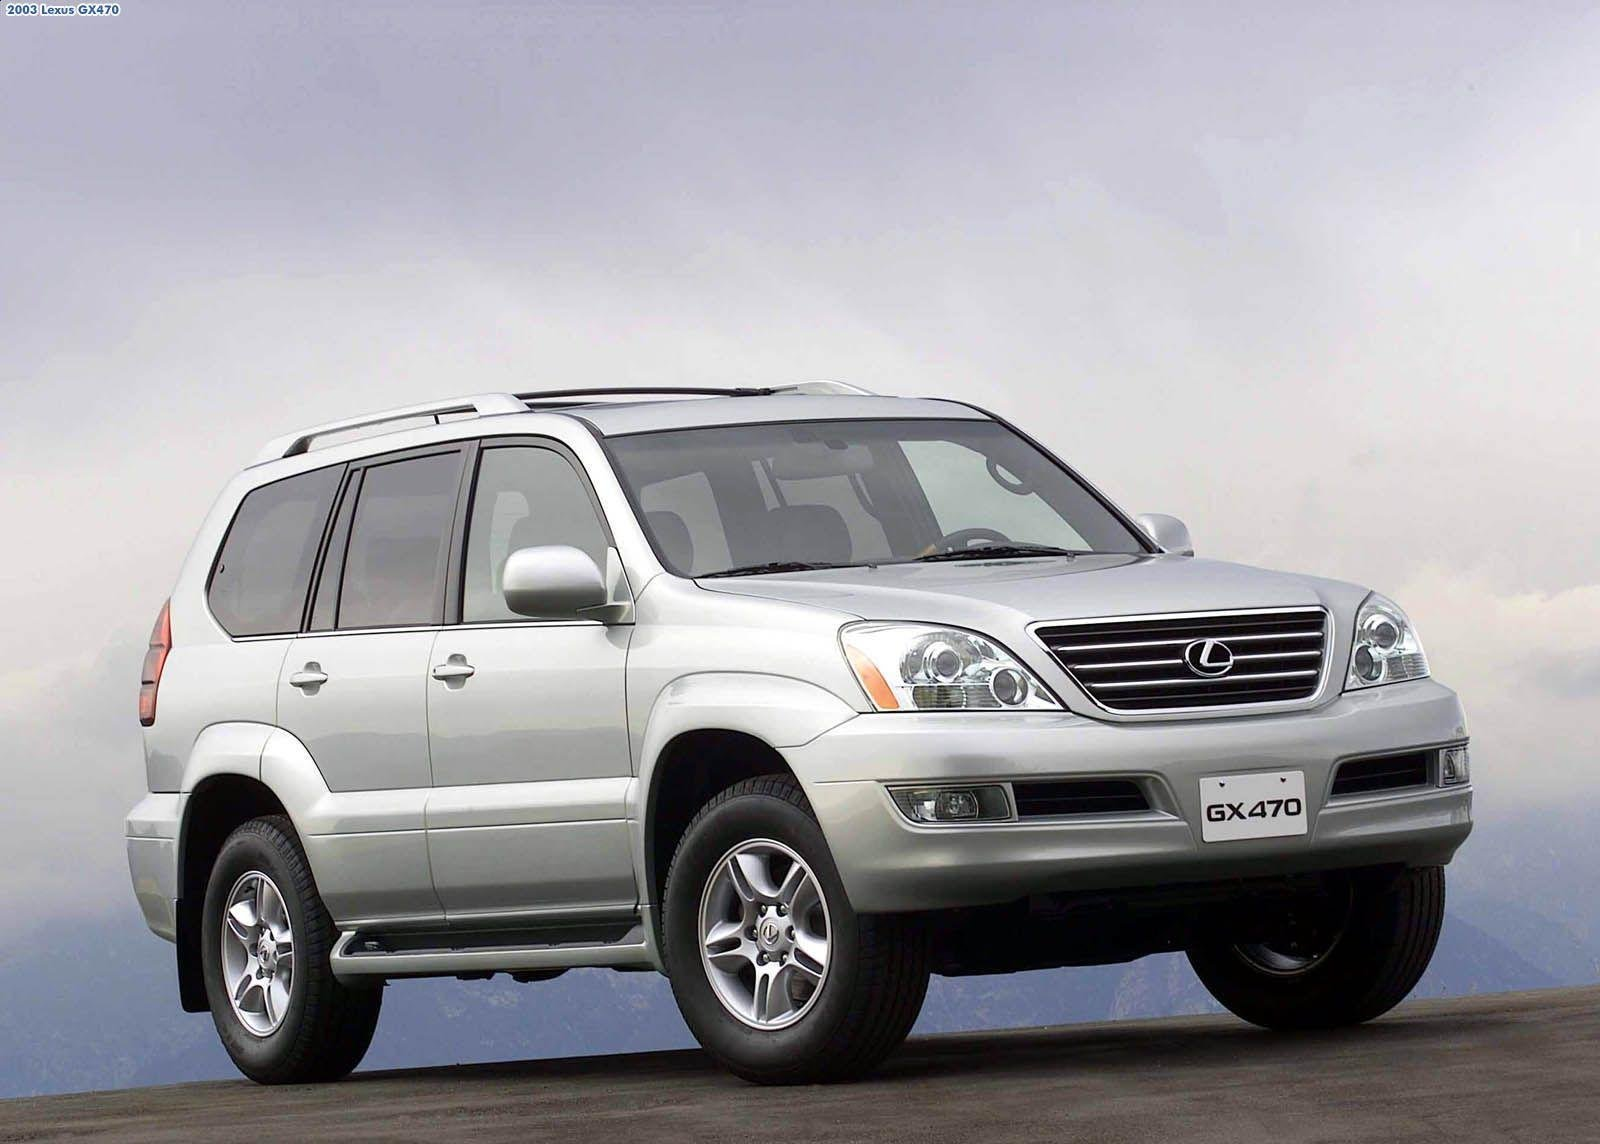 2006 lexus gx 470 picture 39811 car review top speed. Black Bedroom Furniture Sets. Home Design Ideas